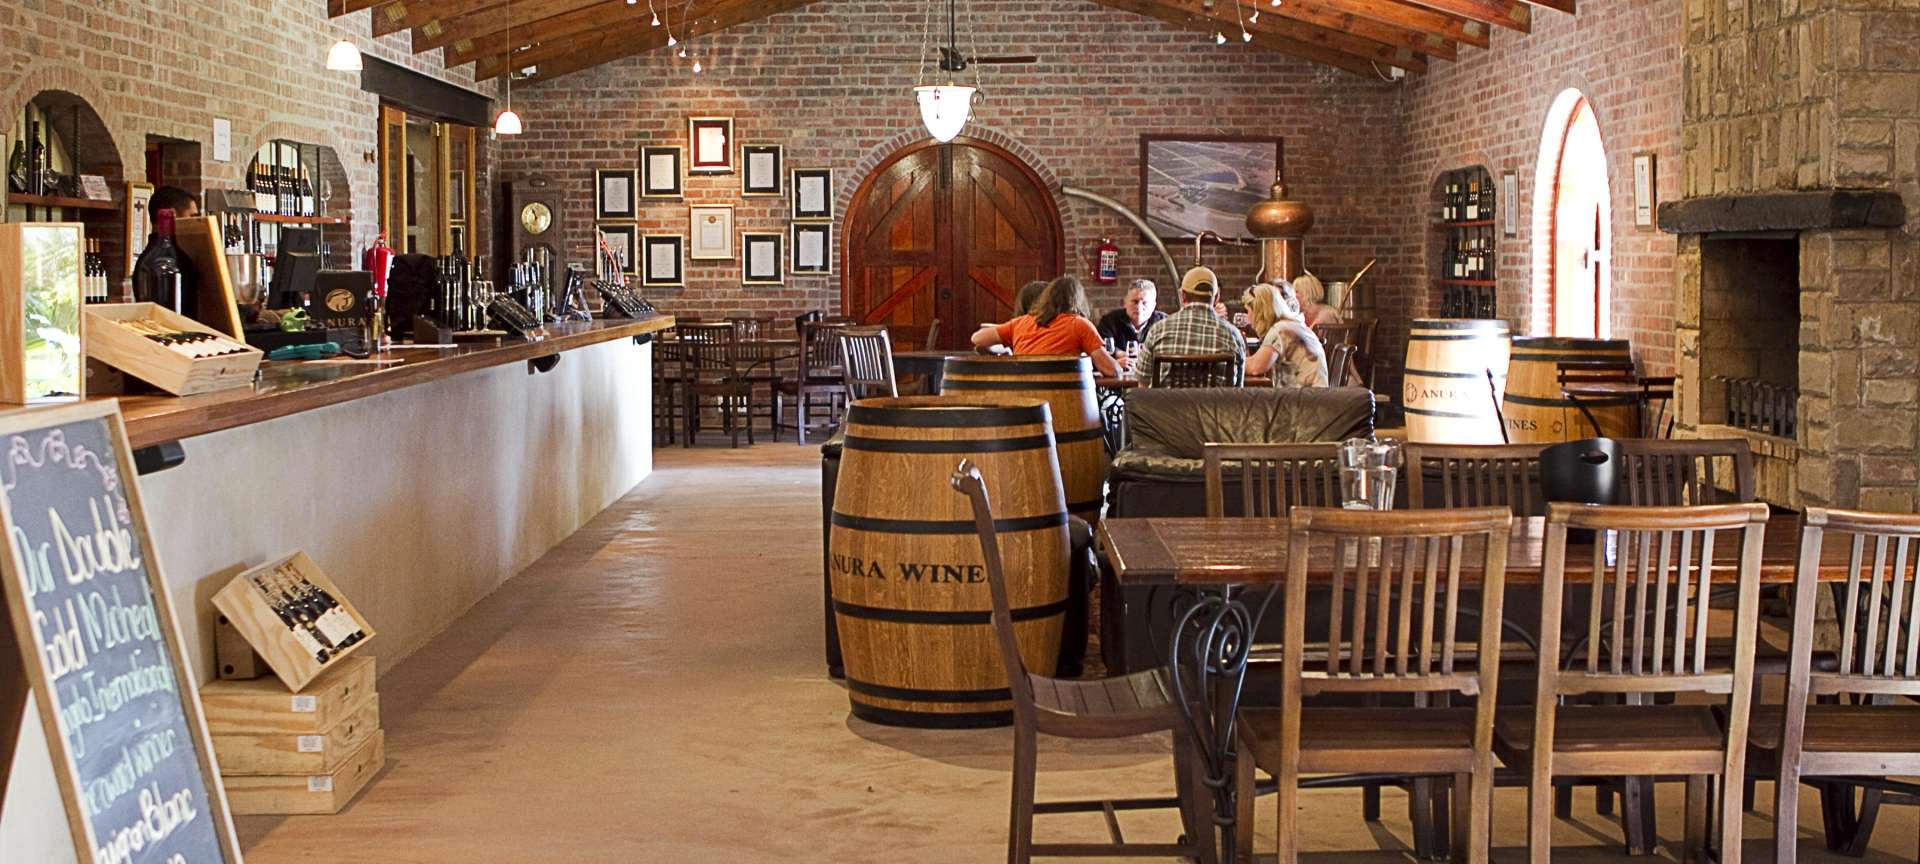 The winemaking tradition in the Cape region is one of the World's oldest and most renowned.